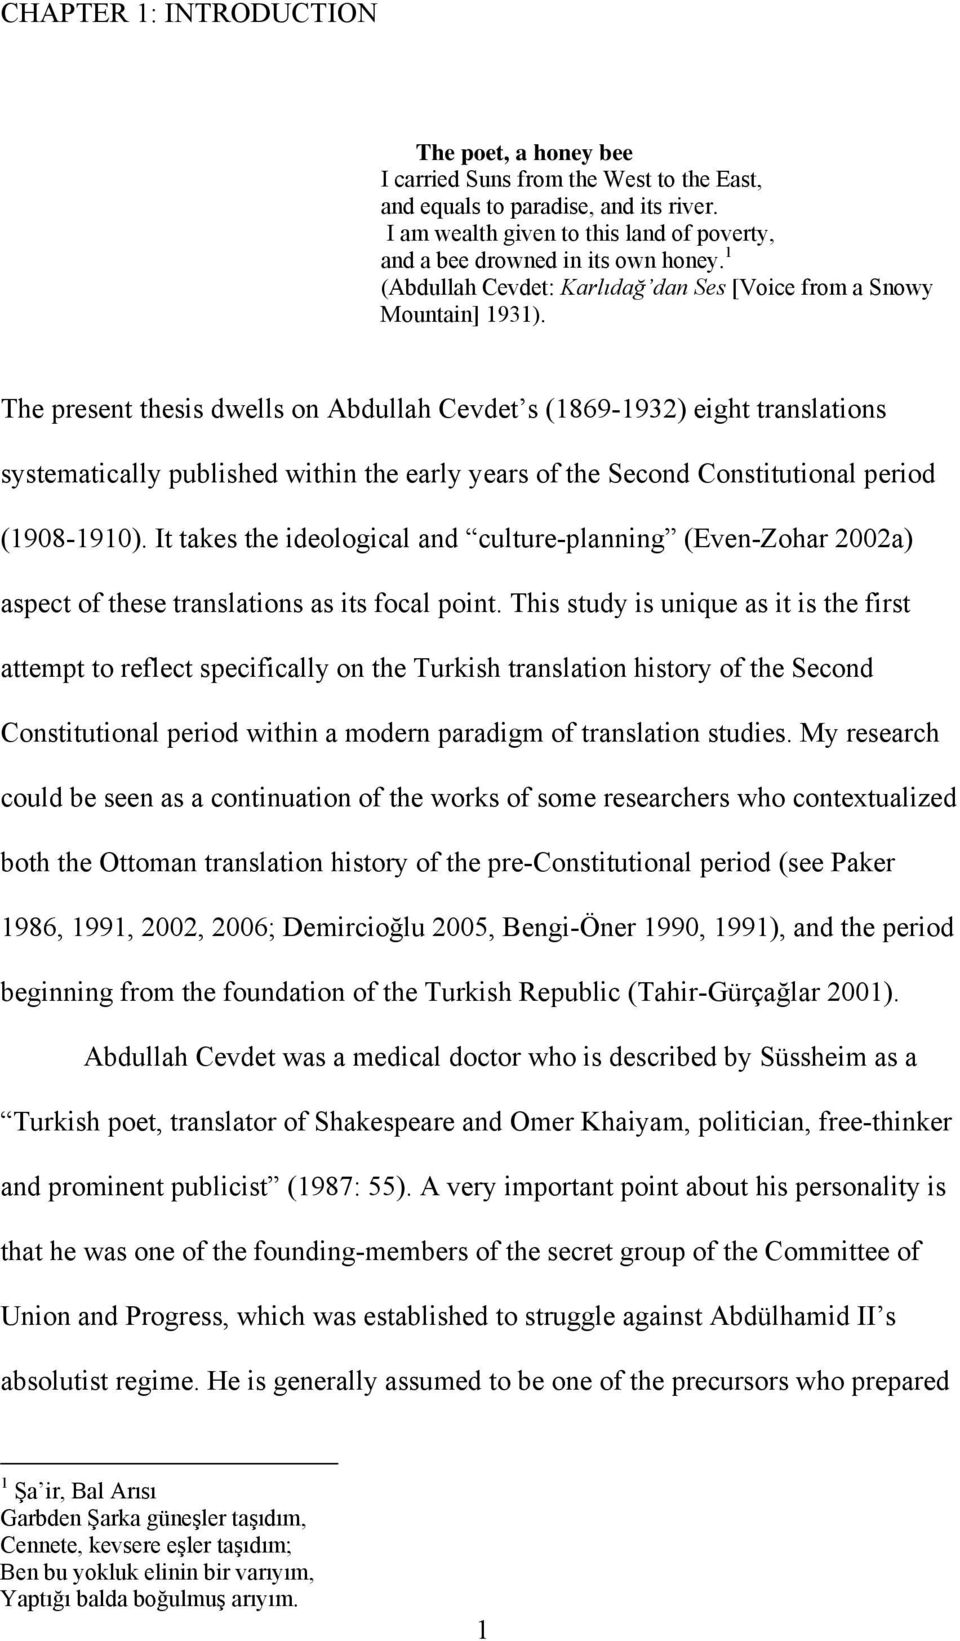 The present thesis dwells on Abdullah Cevdet s (1869-1932) eight translations systematically published within the early years of the Second Constitutional period (1908-1910).